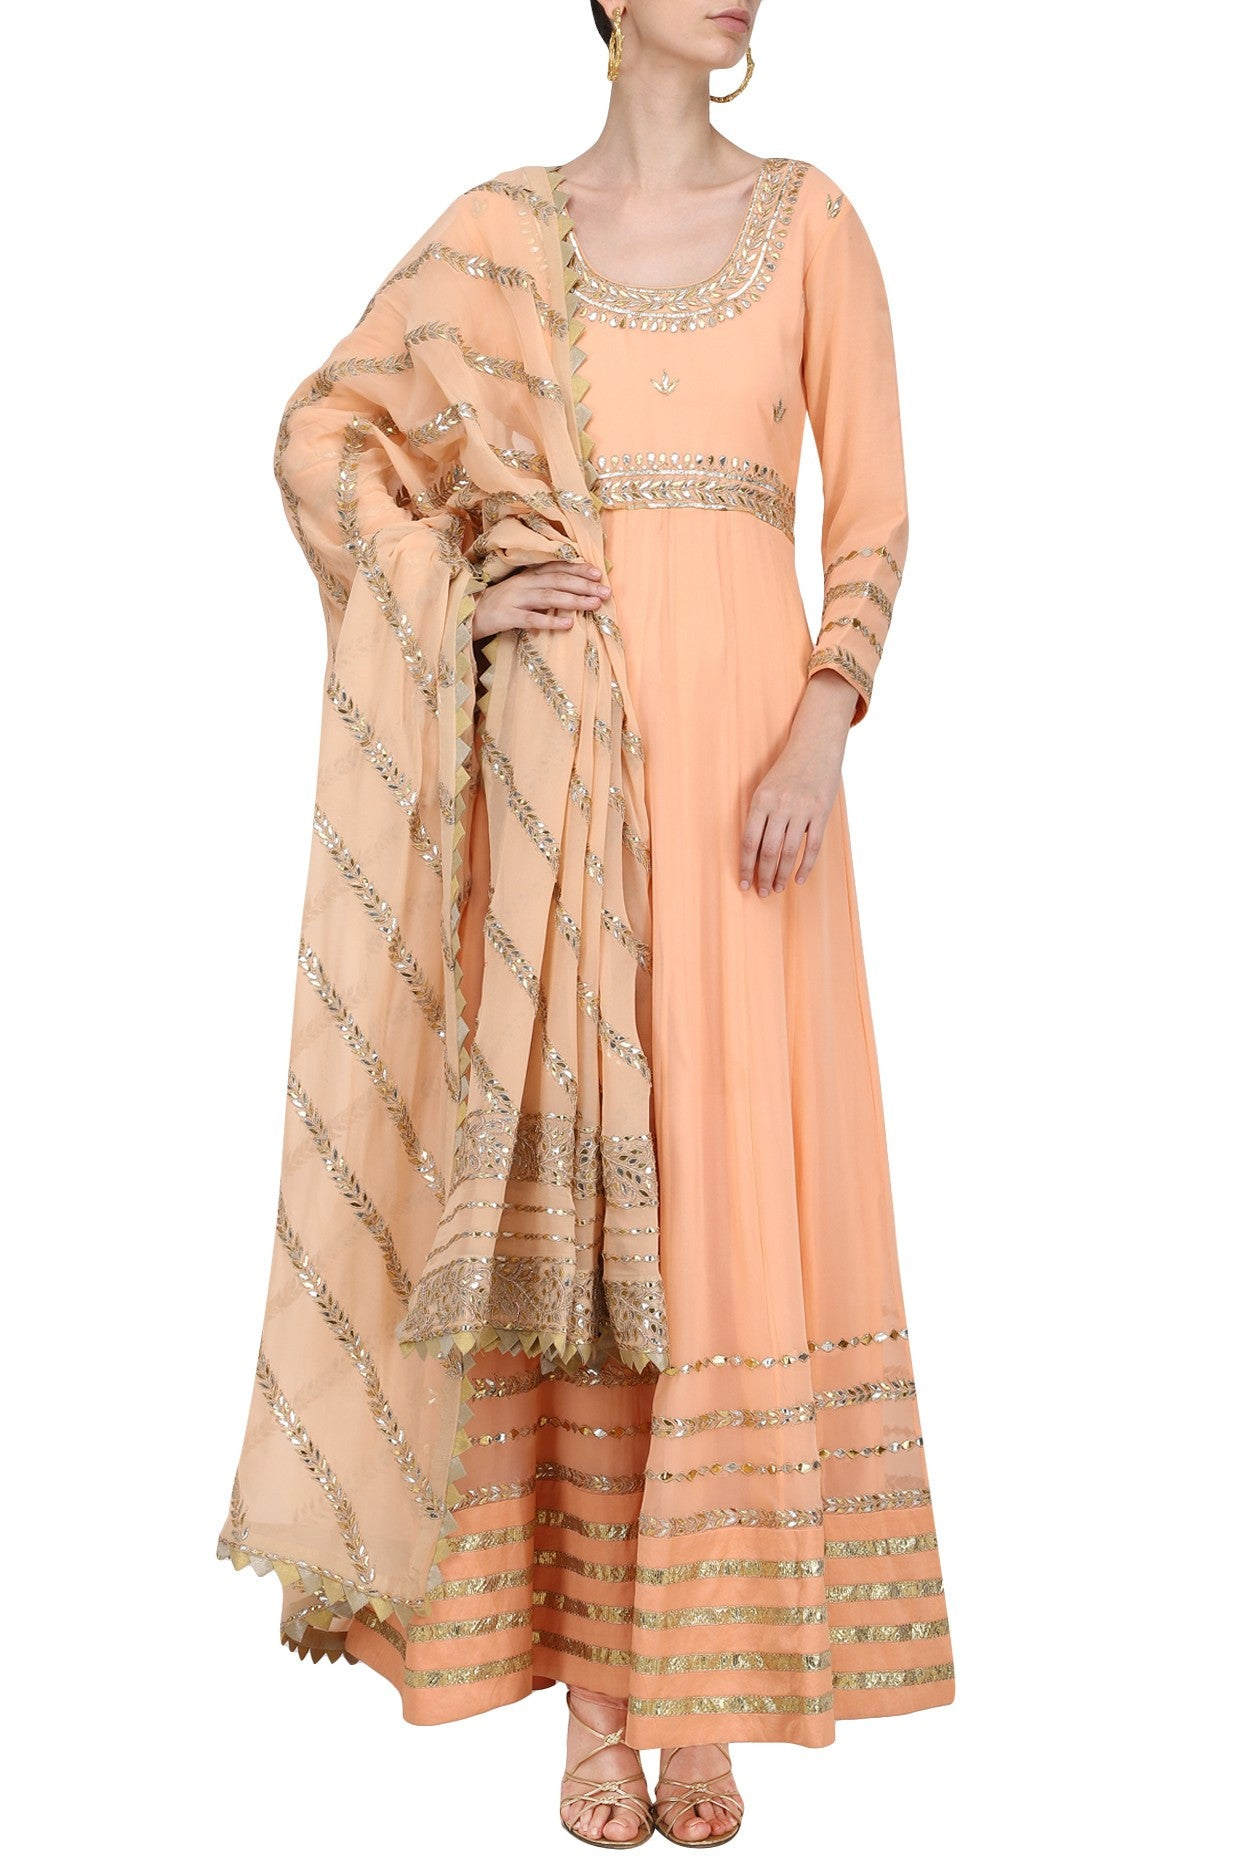 Peach Floor Length Rich Kalidar Dress - Rana's by Kshitija